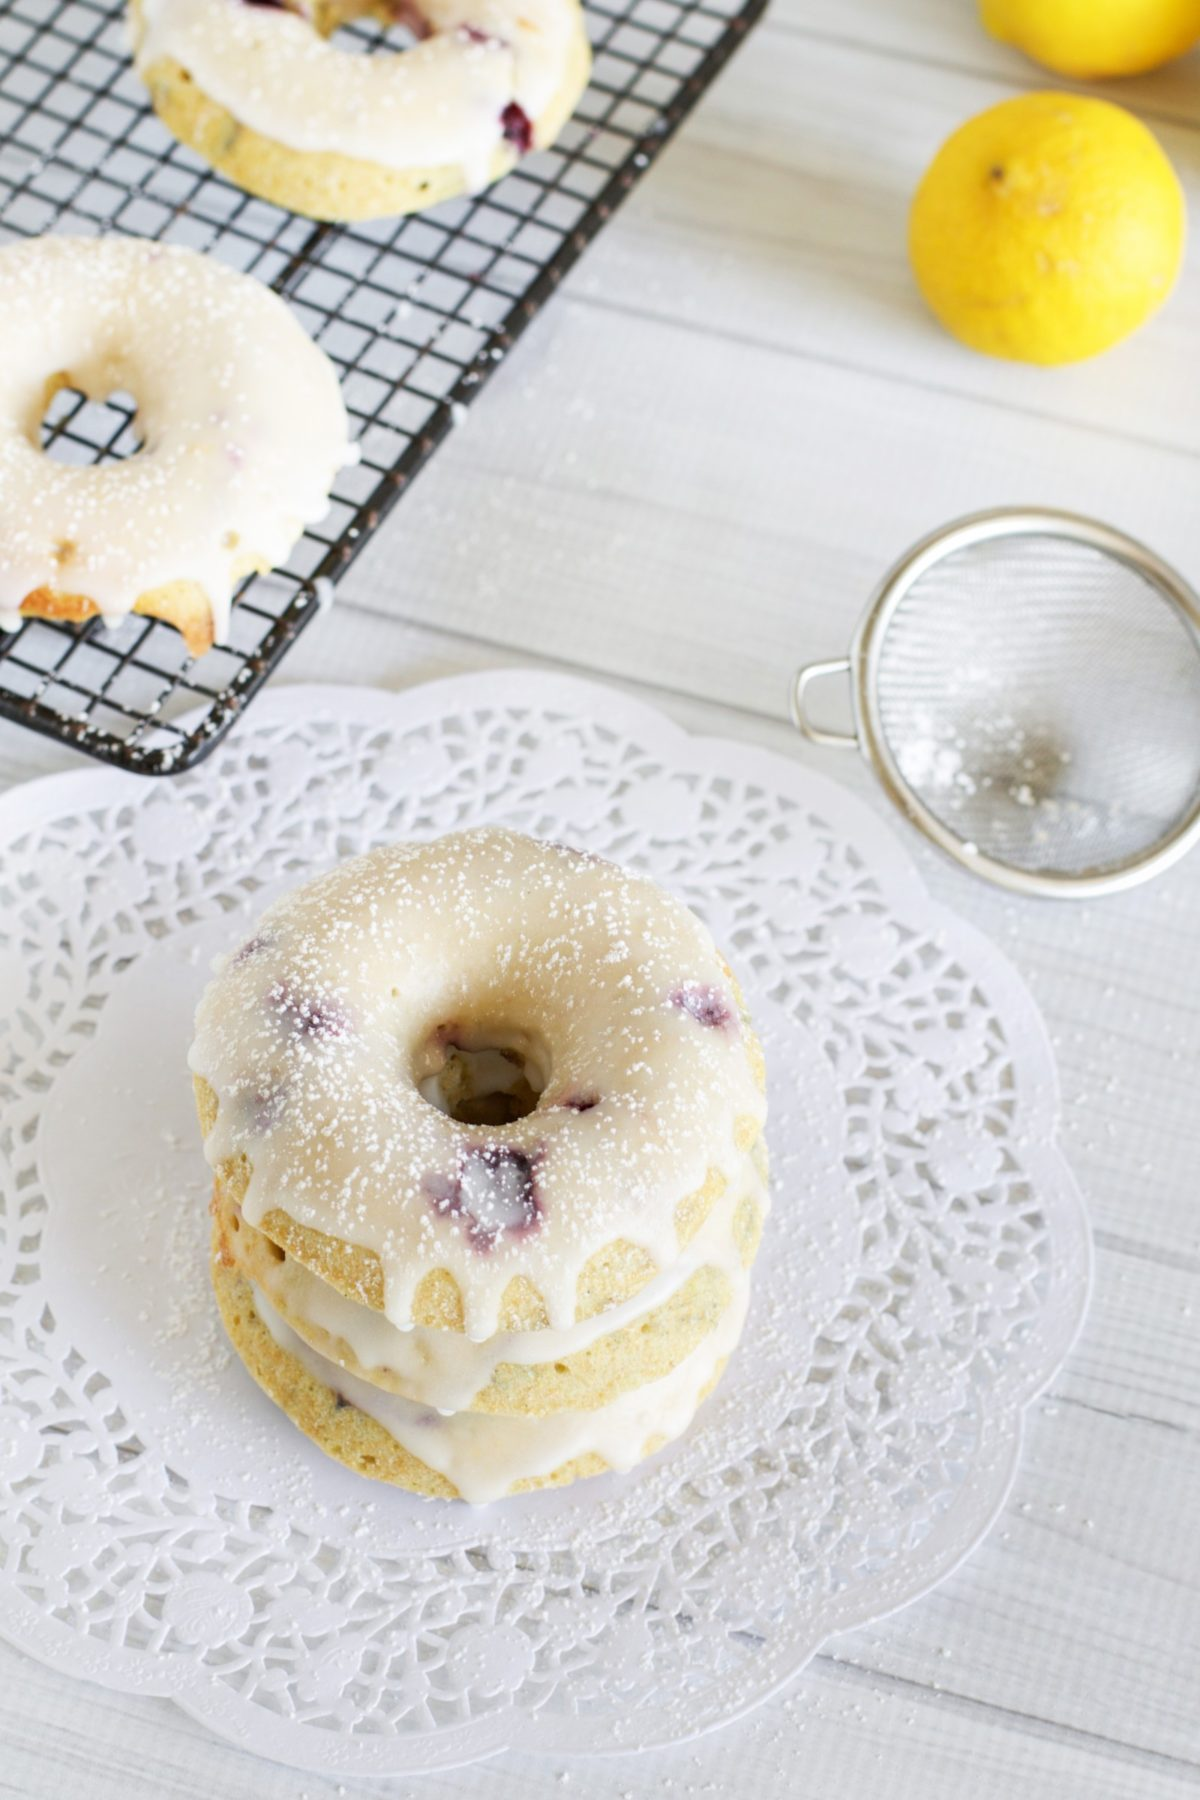 Lemon and blueberry baked donuts